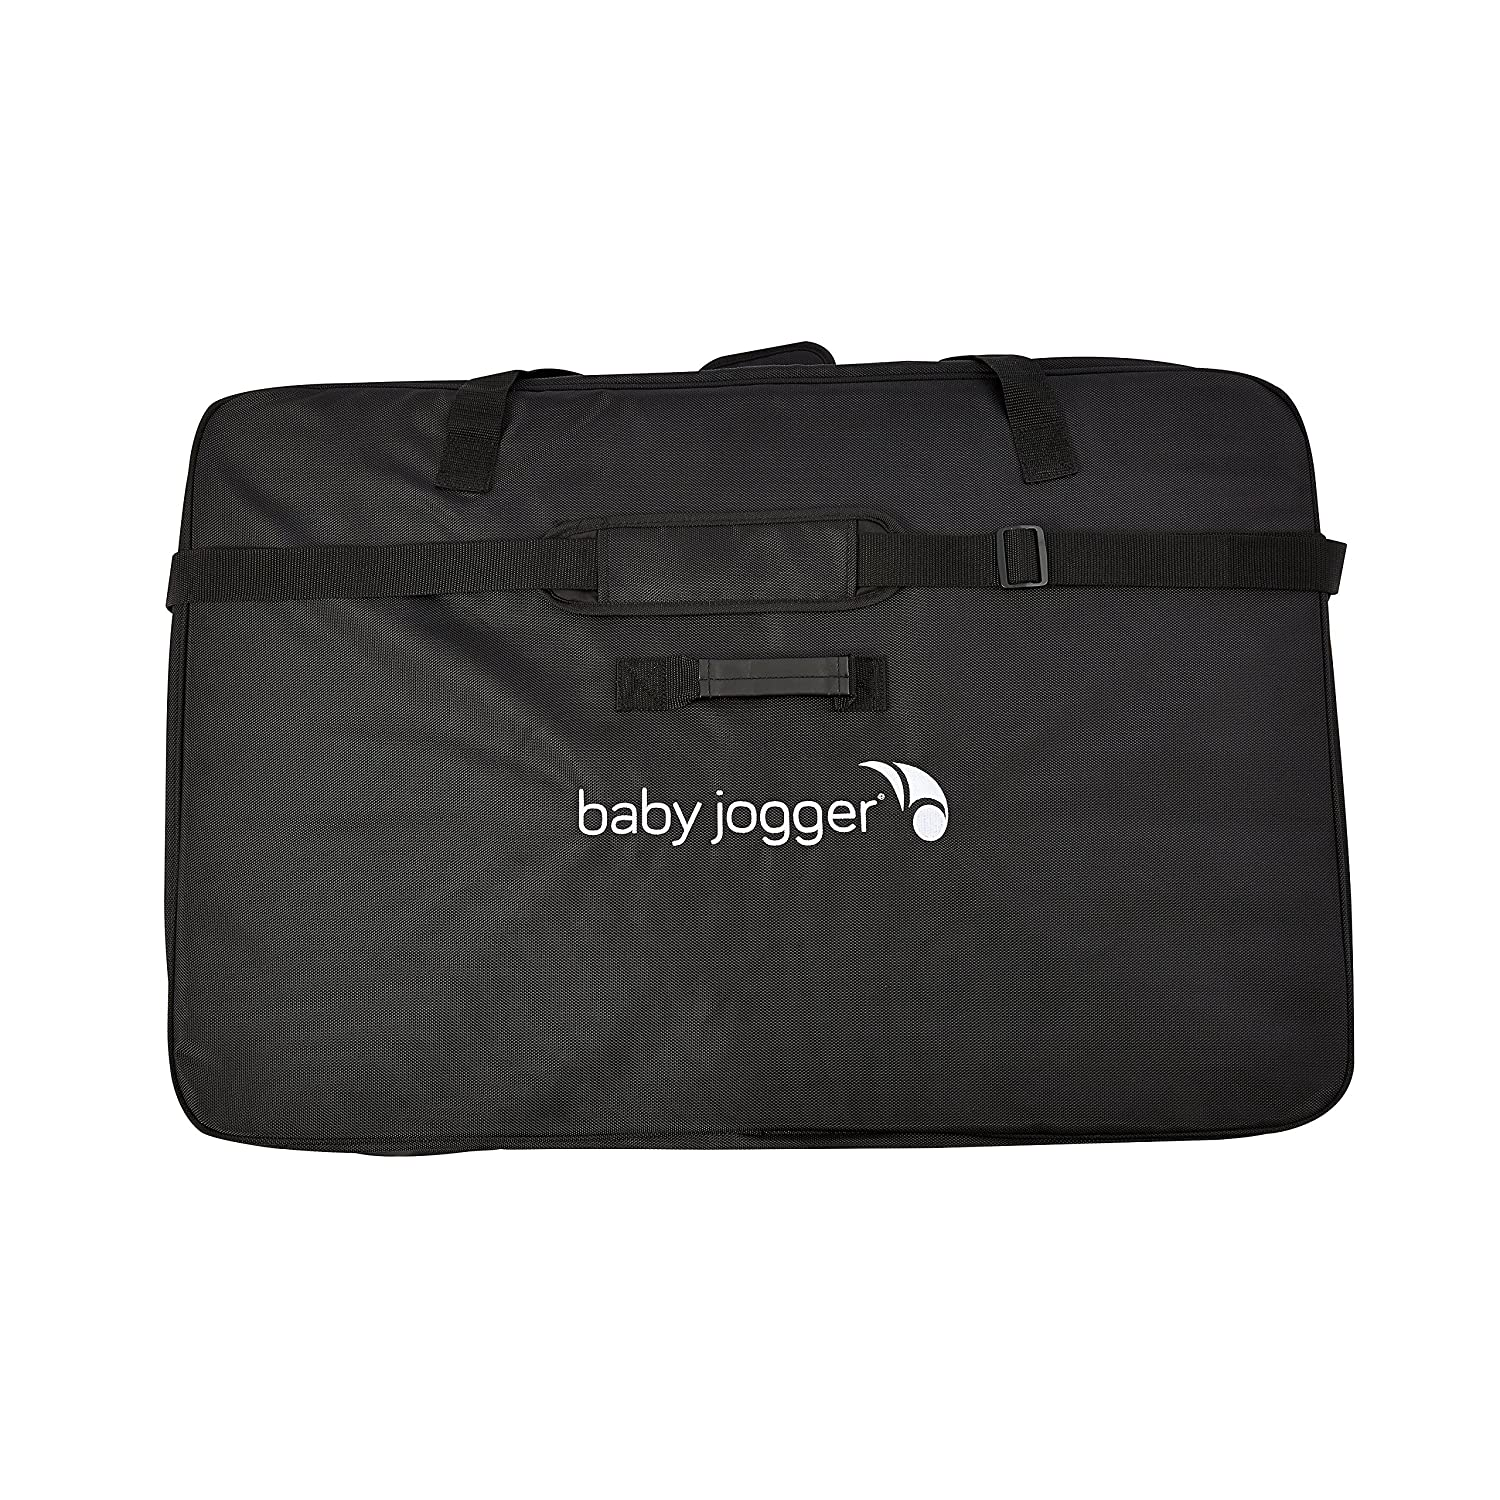 Baby Jogger Carry Bag - Universal Double, Black 1968005